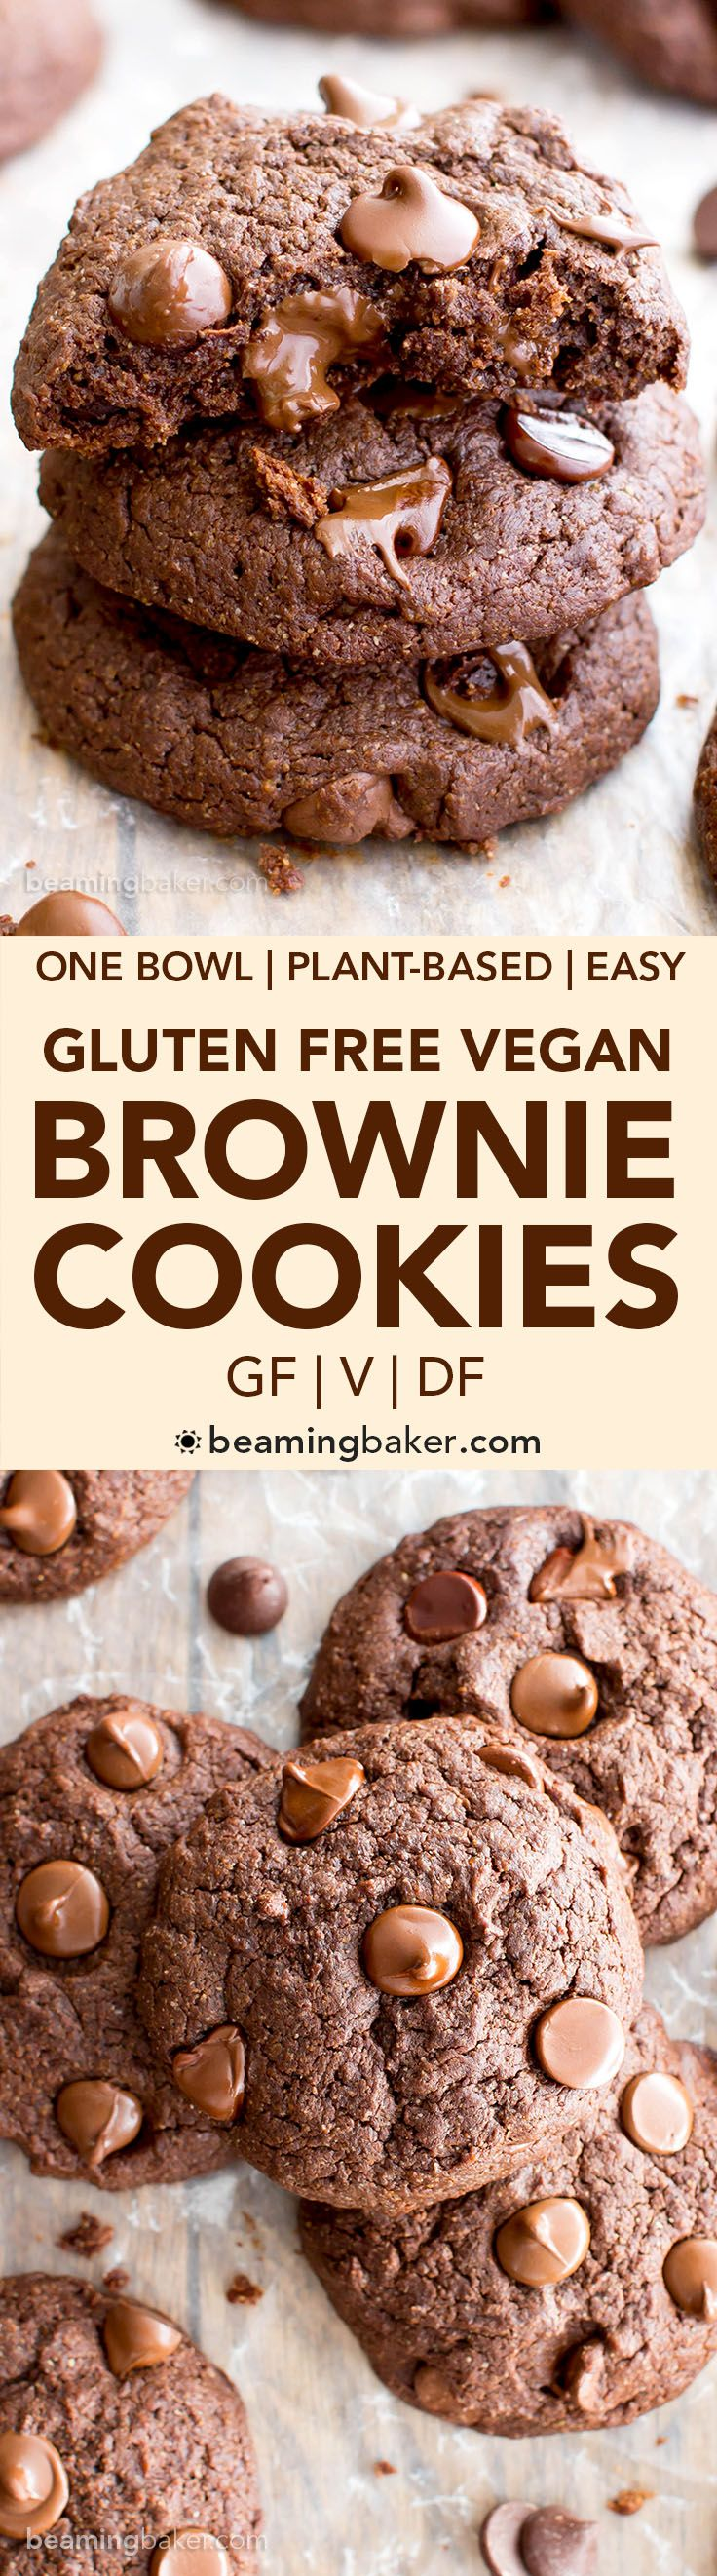 Vegan Chocolate Brownie Cookies (Gluten Free, Oat Flour, Vegan, Dairy-Free, One Bowl) - Beaming Baker